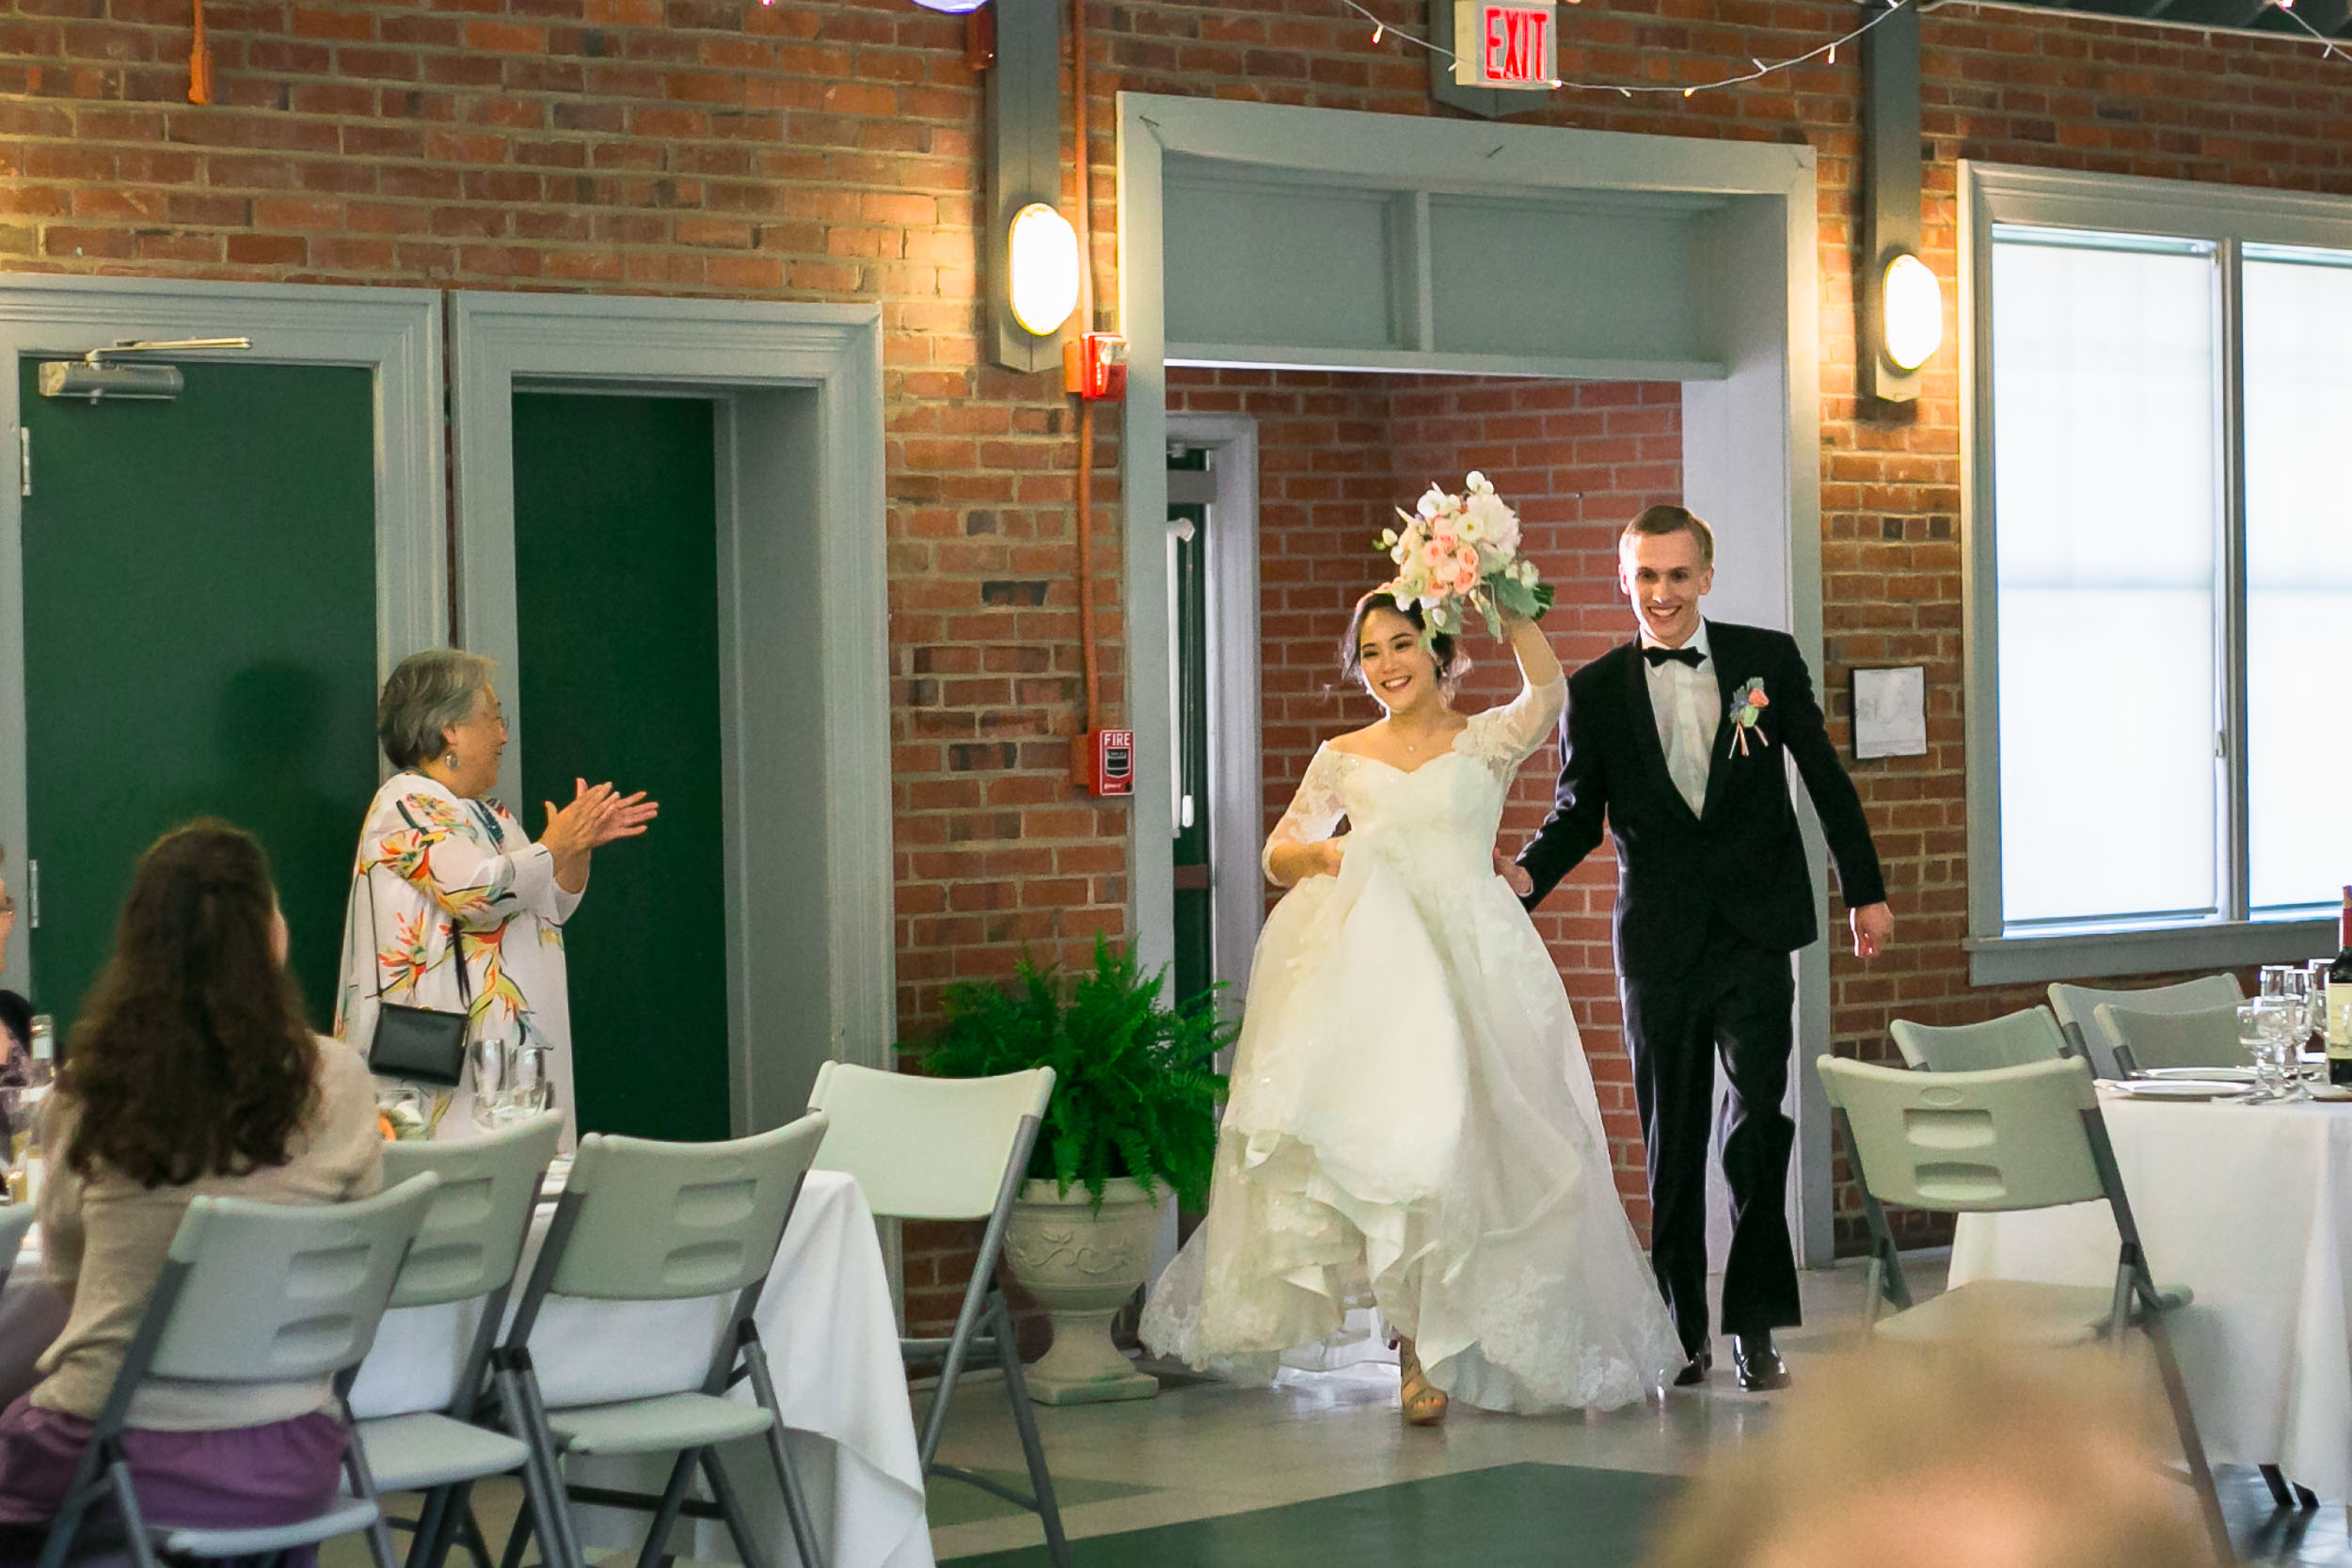 Raleigh Wedding Photographer | G. Lin Photography | Bride and groom entering the reception